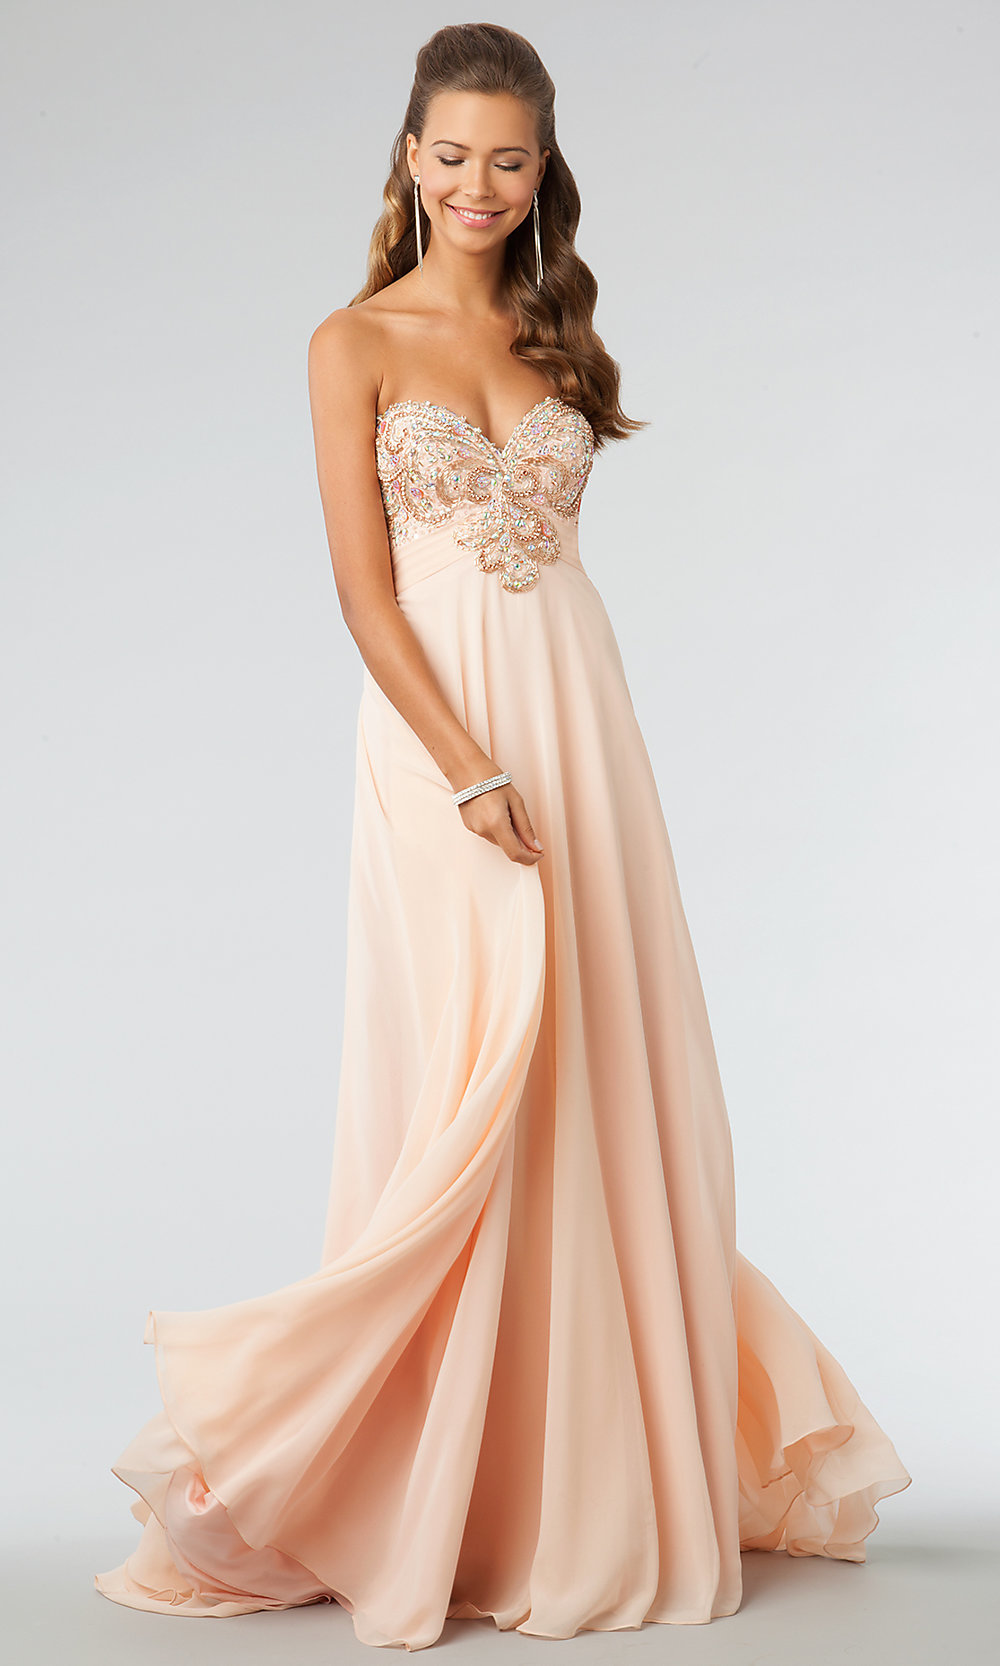 A z stourport prom dresses 46375